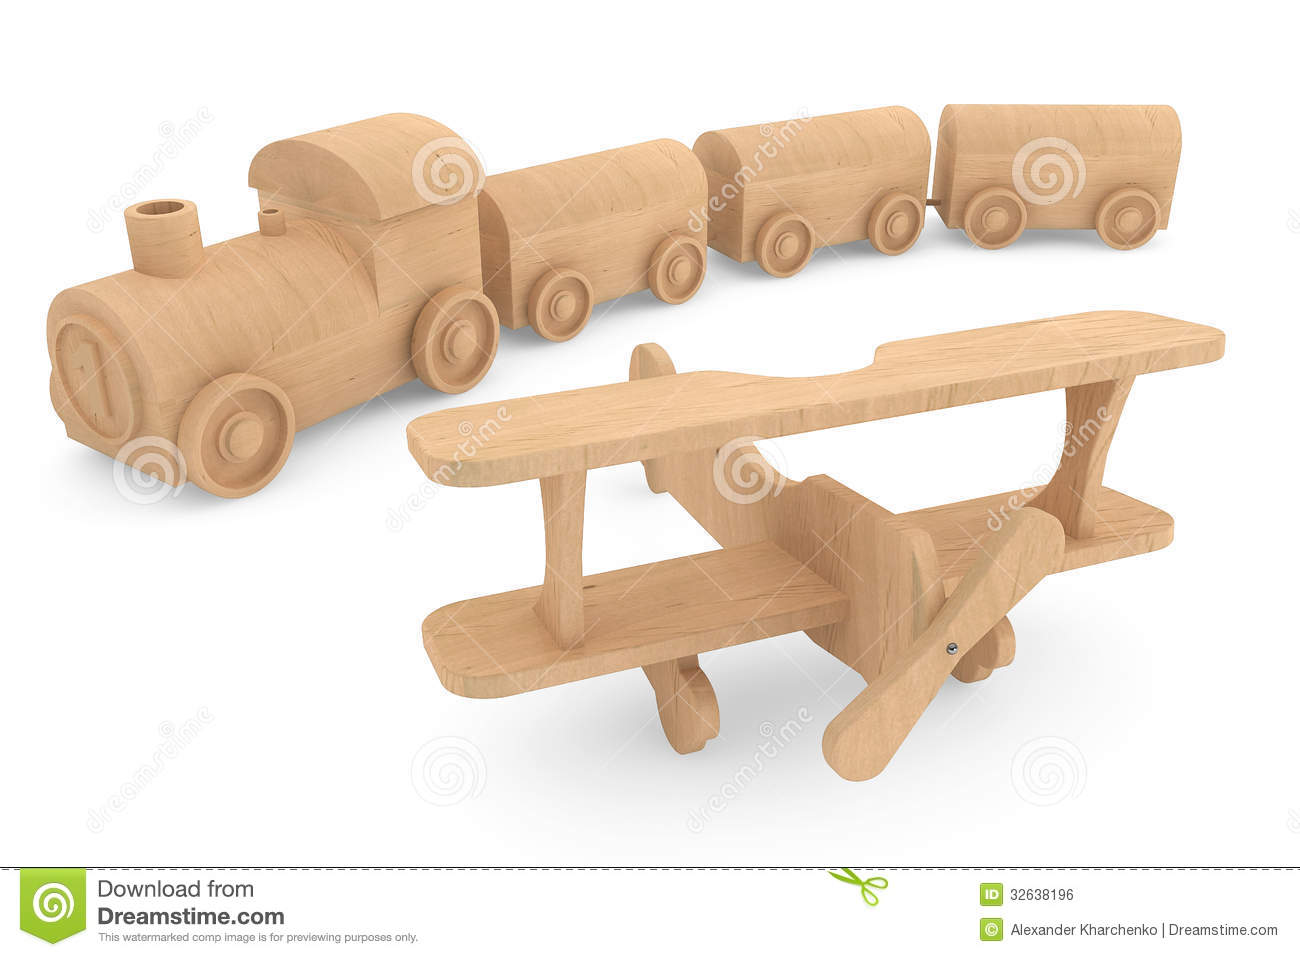 ... similar stock images of ` Children toy wooden train and airplane